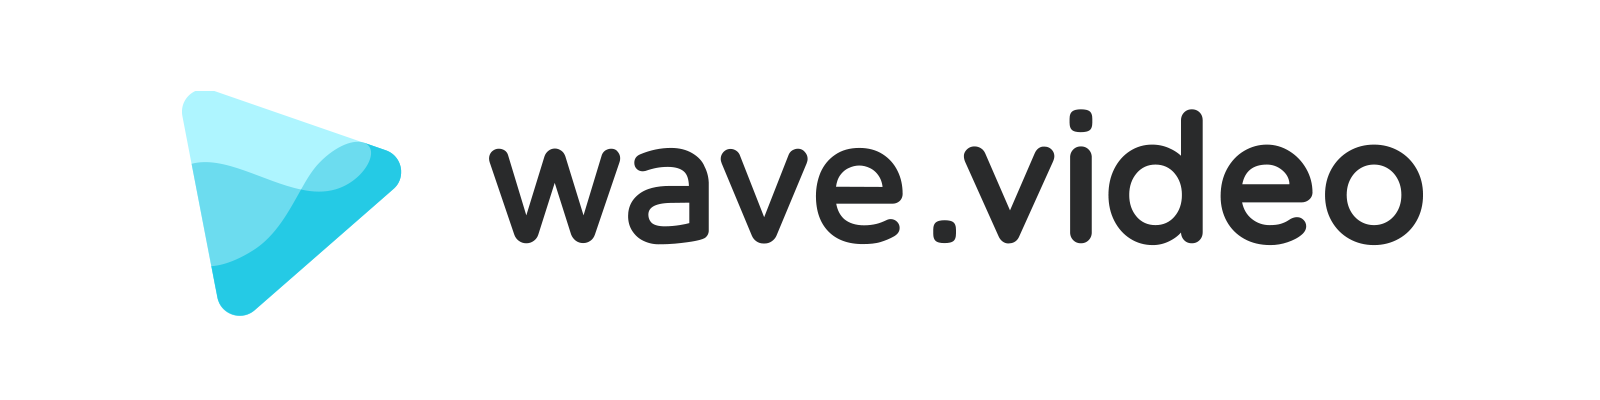 wave-video